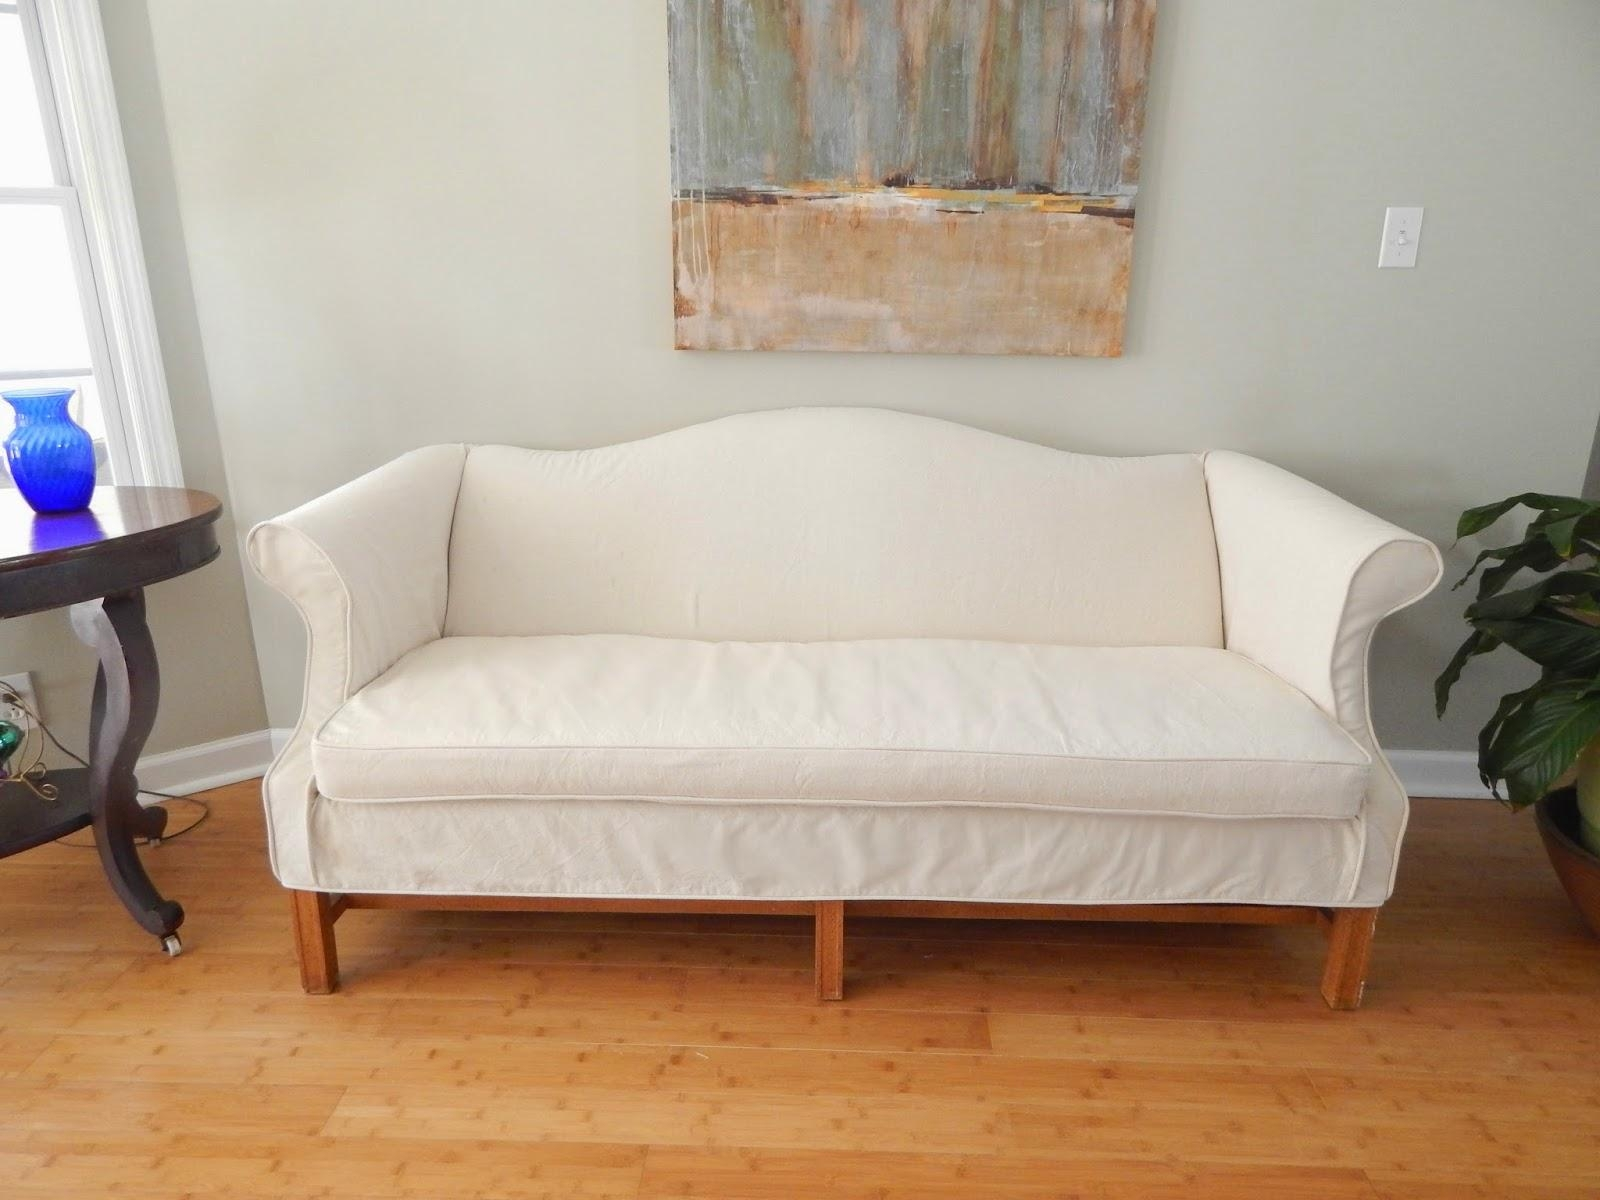 Pam Morris Sews: Slipcovers Regarding Canvas Sofa Slipcovers (Image 15 of 20)